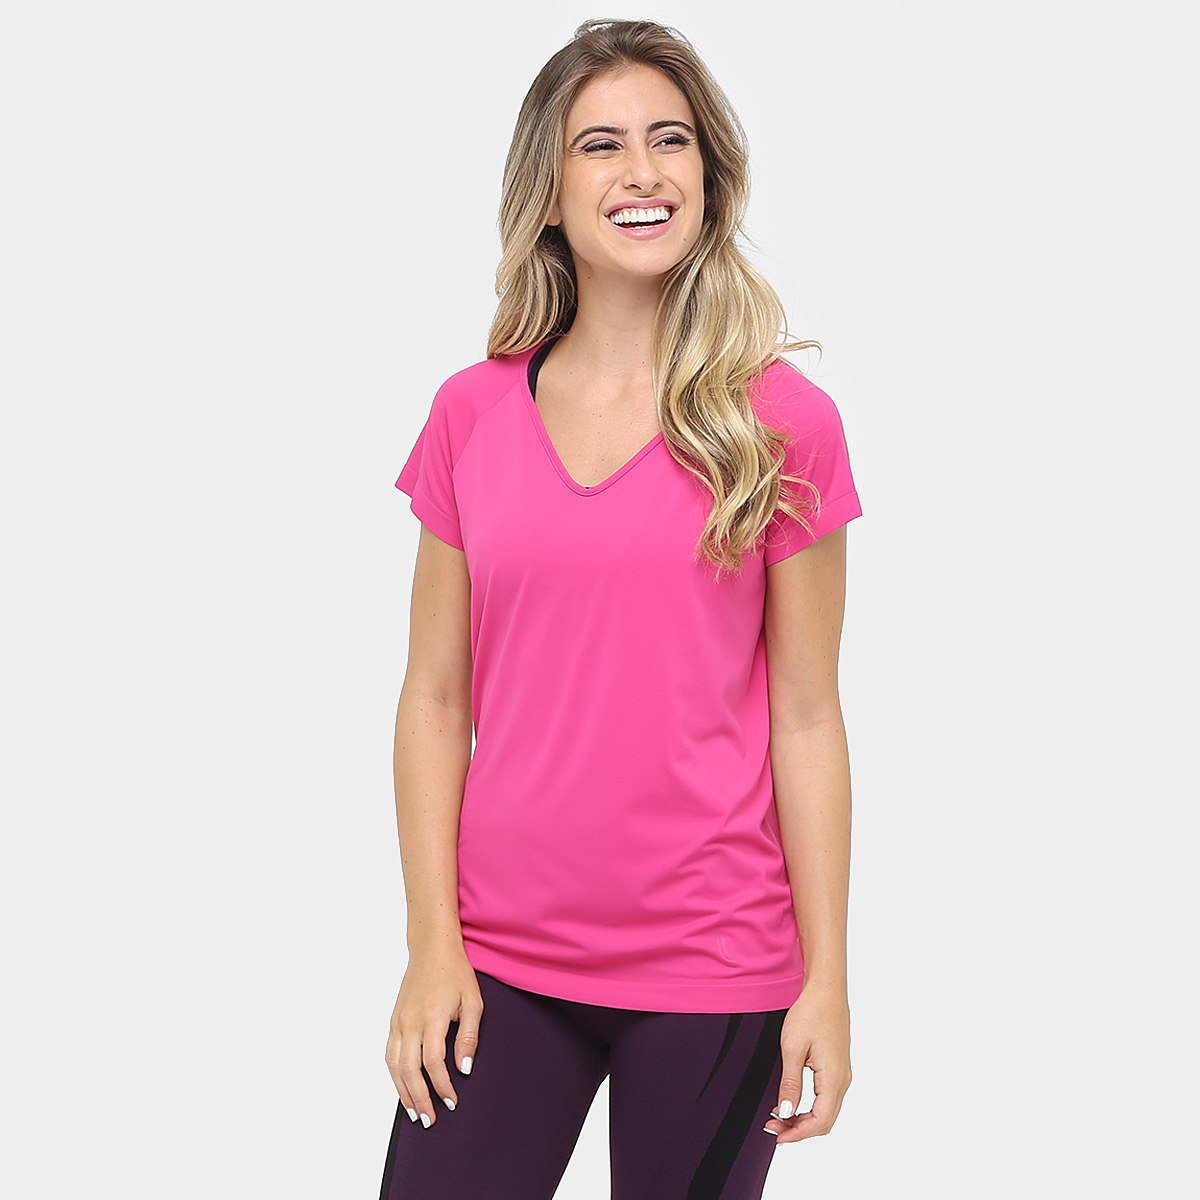 CAMISETA LUPO CONFORTABLE ROSA